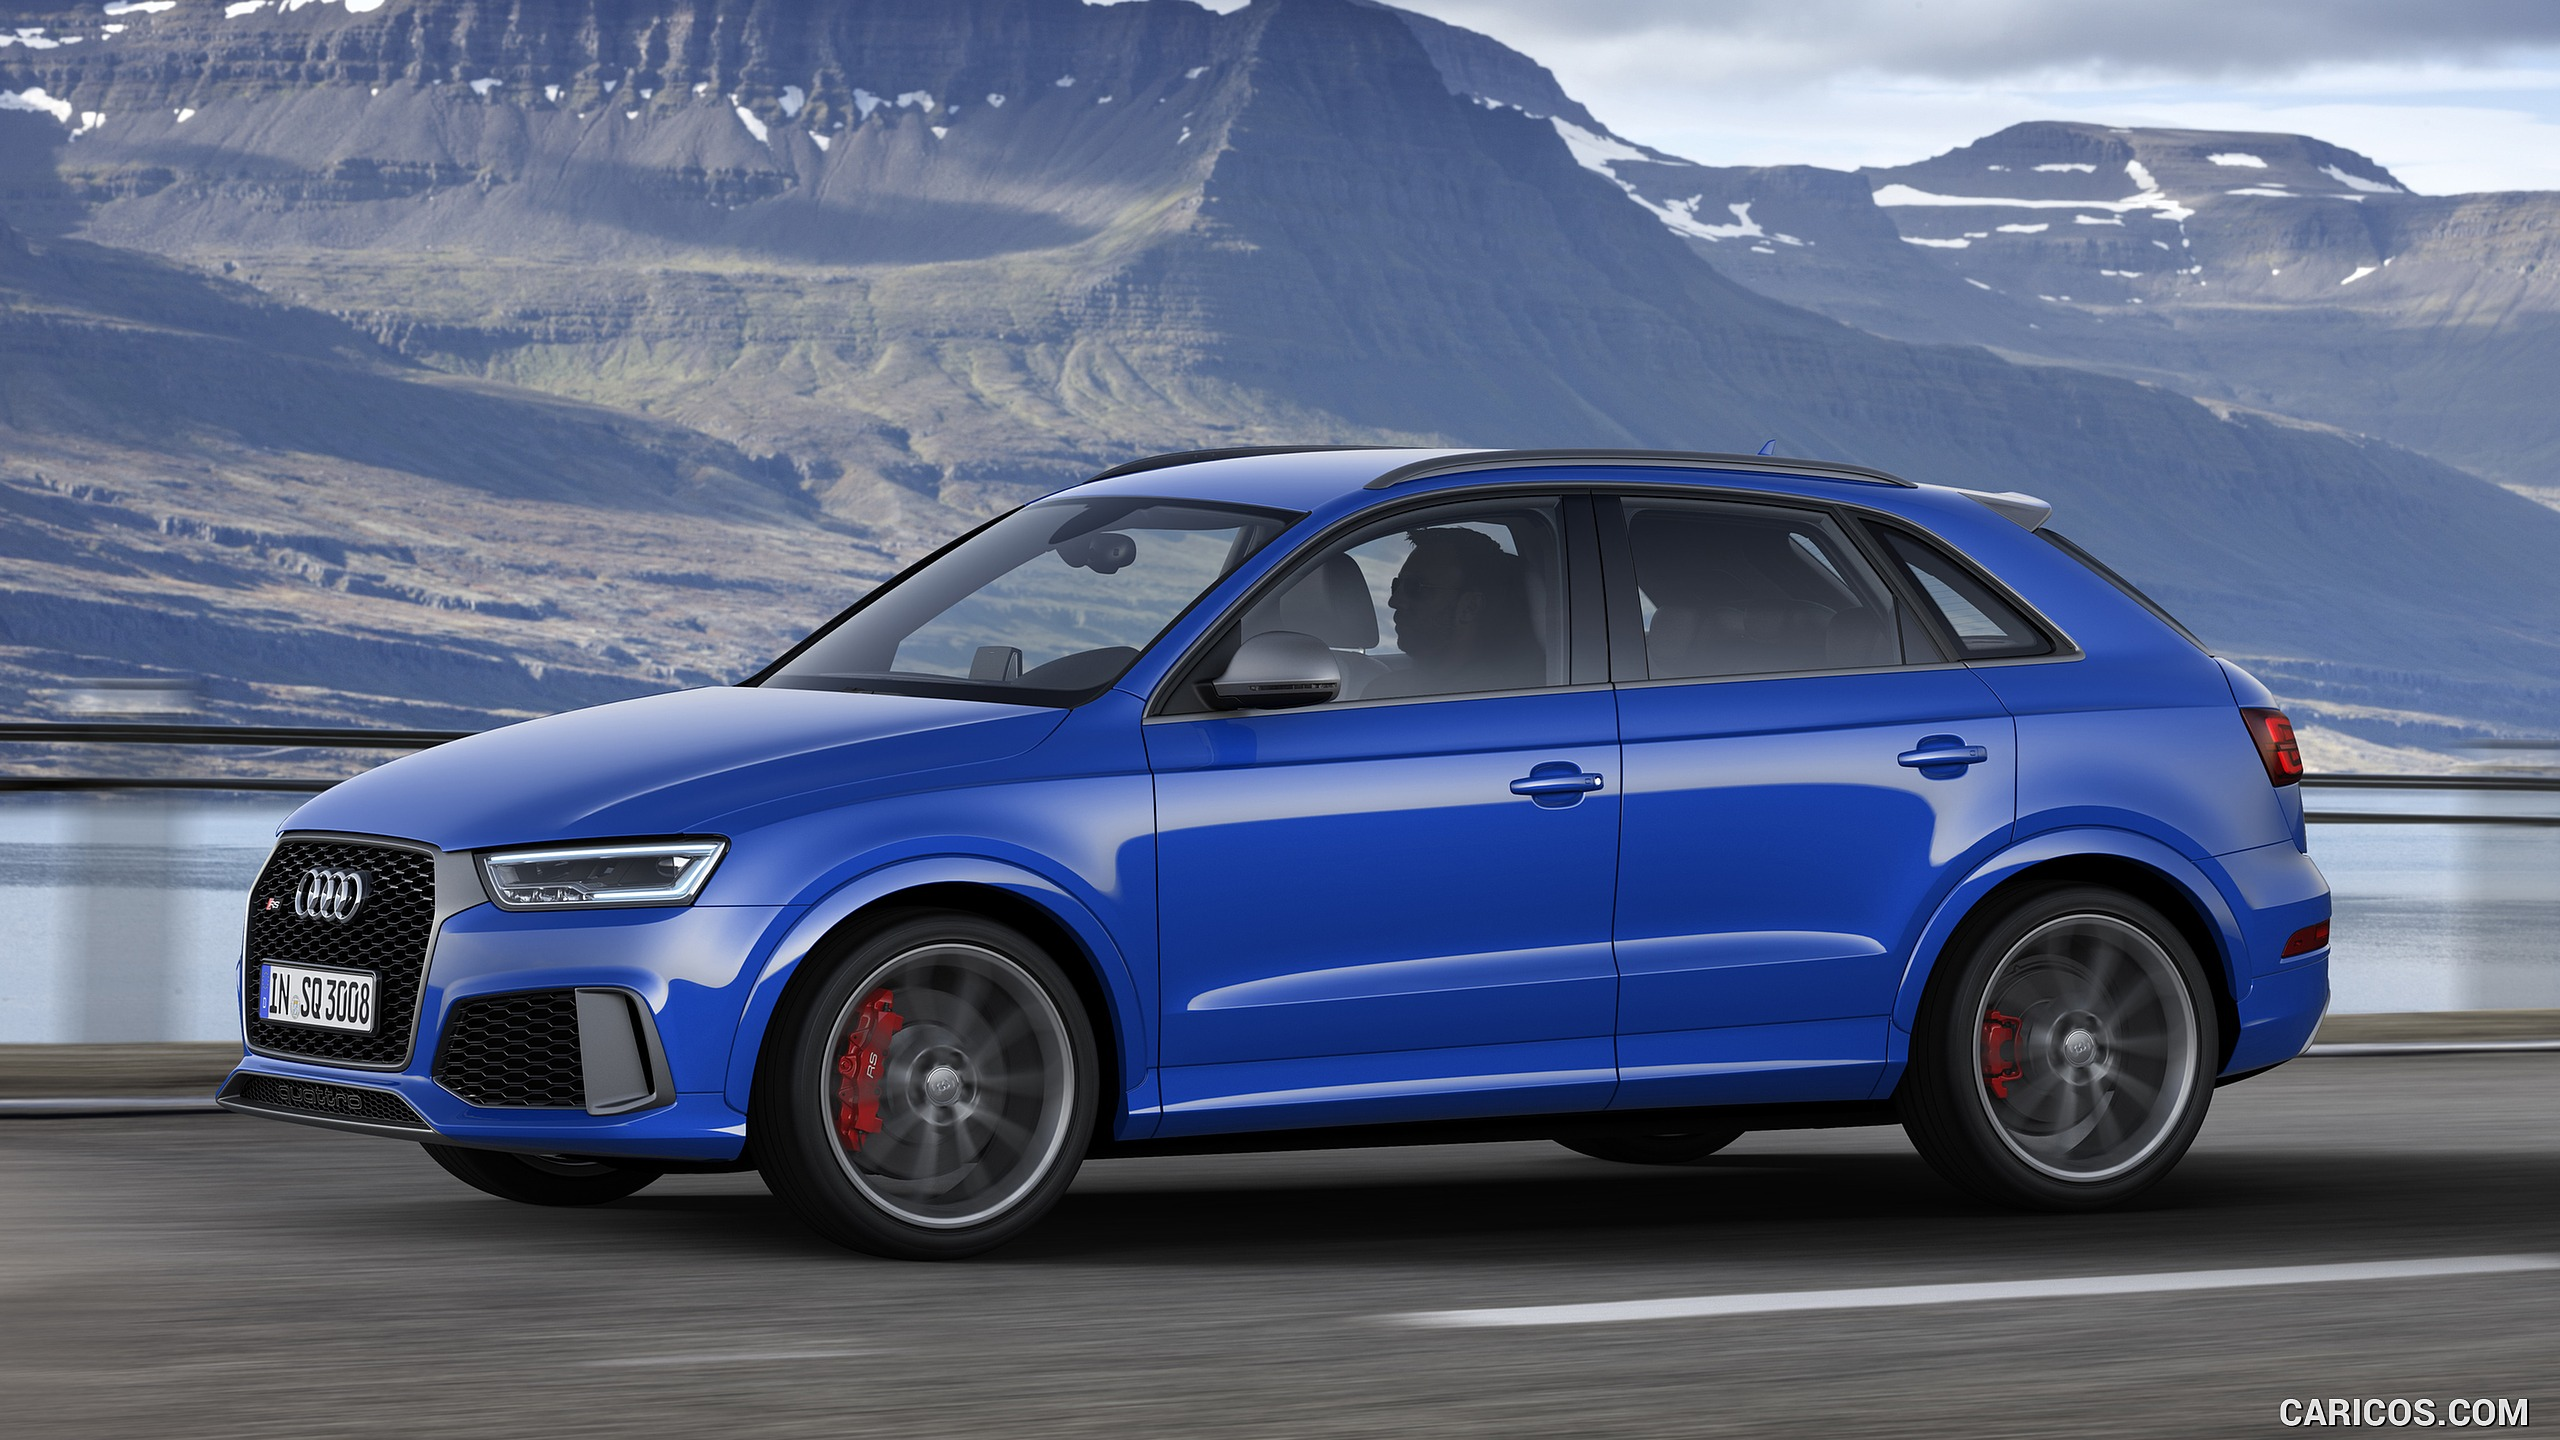 Audi Q3 Specifications, Price, Mileage, Pics, Review